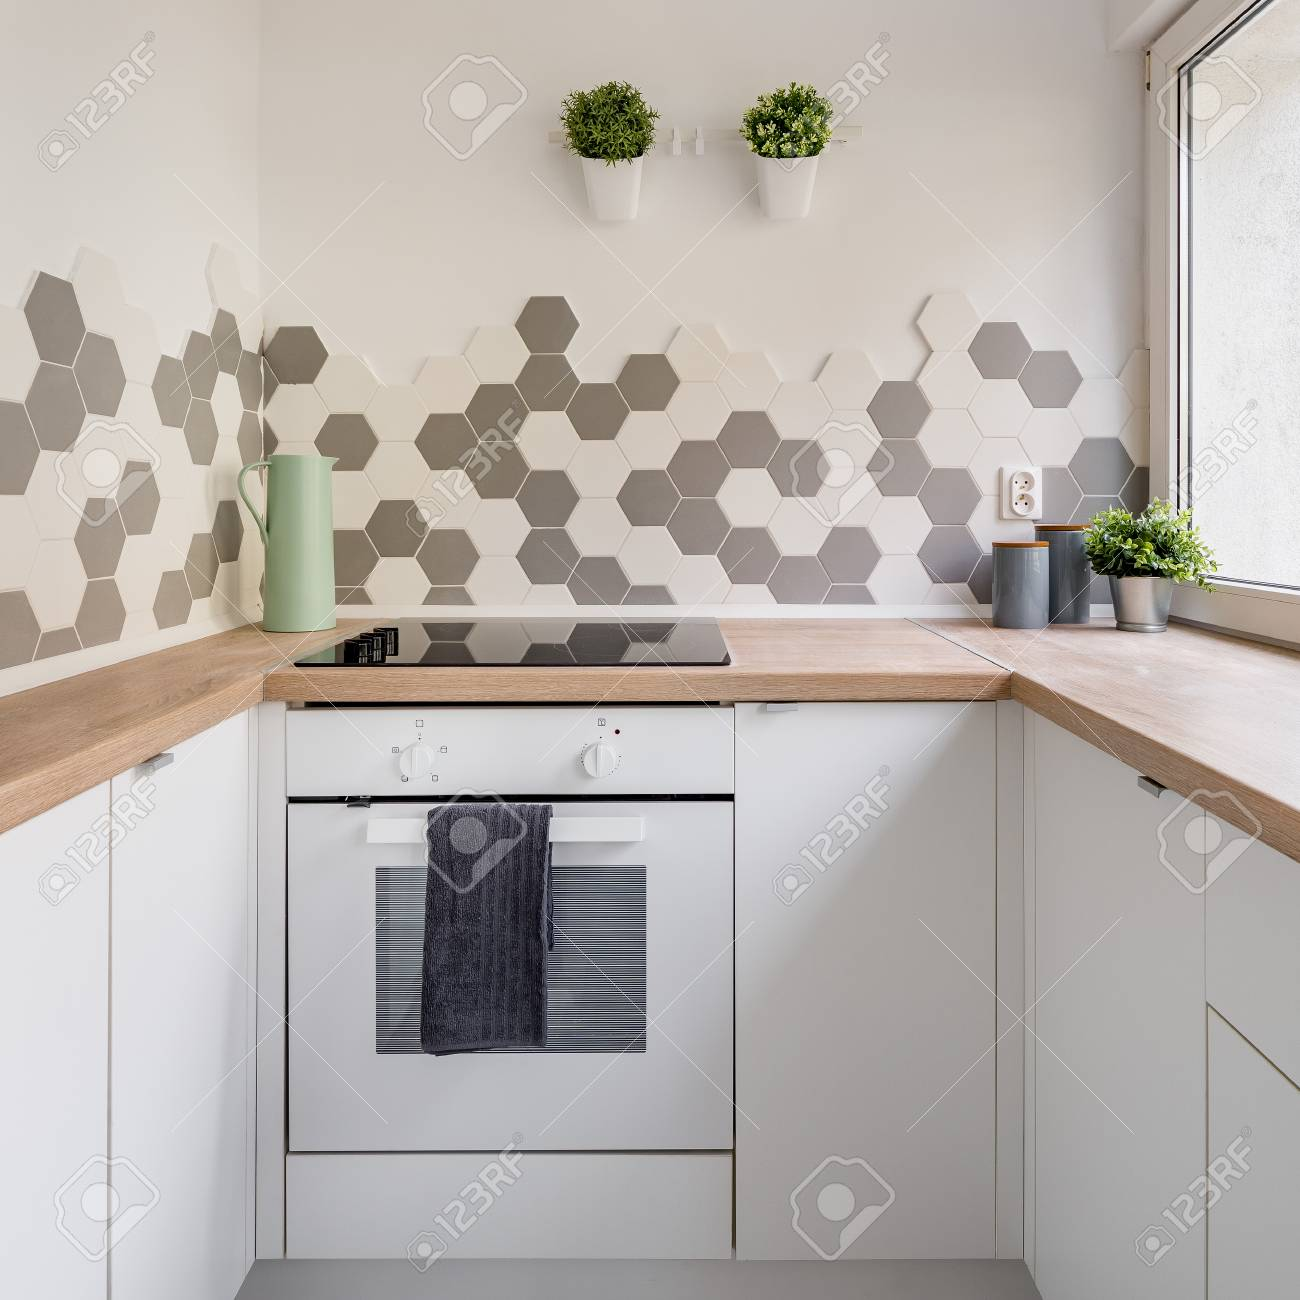 Kitchen In Nordic Style With White Cabinets Wooden Countertop Stock Photo Picture And Royalty Free Image Image 105300206